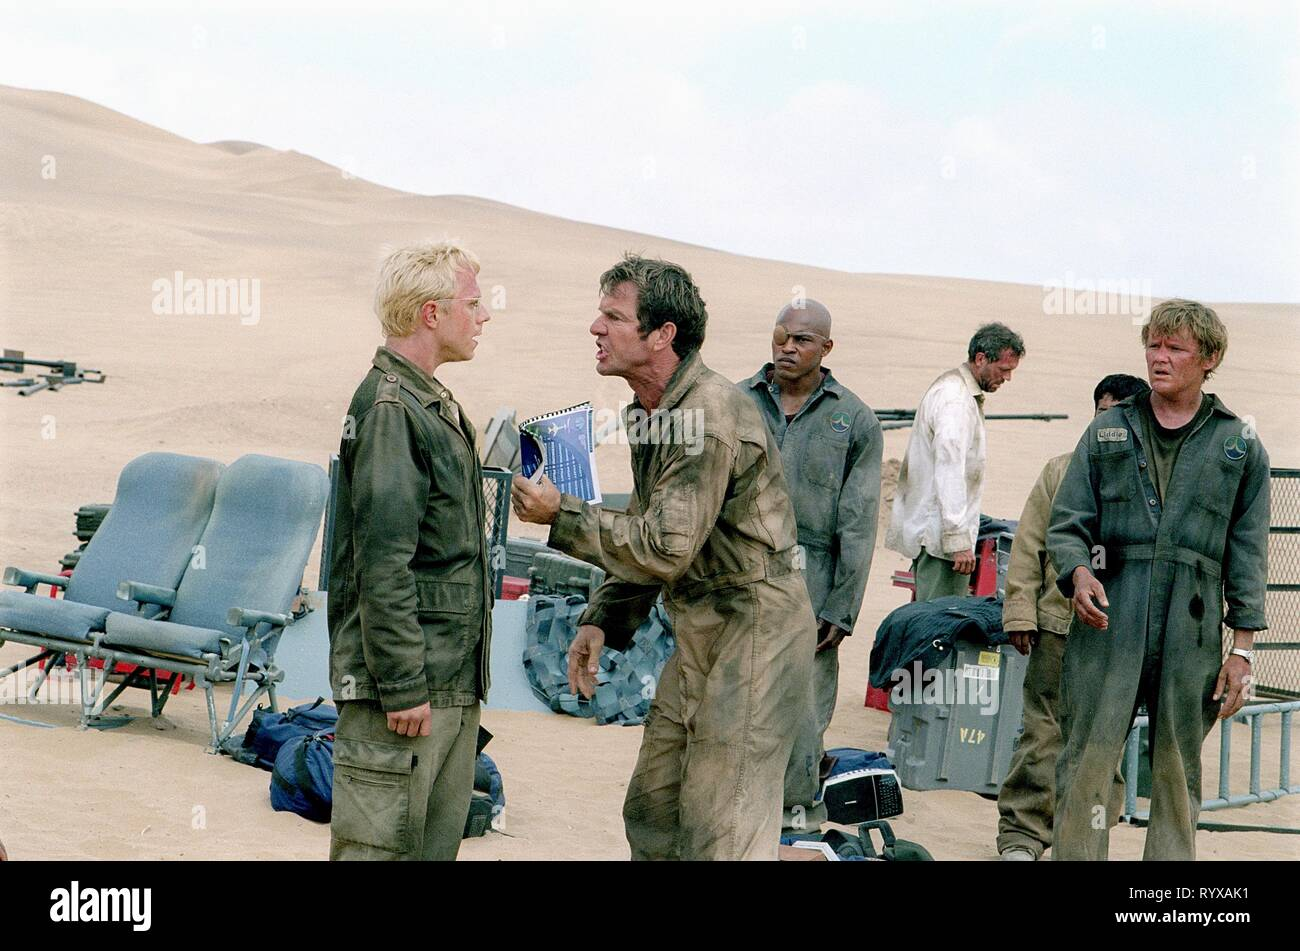 GIOVANNI RIBISI, DENNIS QUAID, KIRK JONES, HUGH LAURIE,SCOTT MICHAEL CAMPBELL, FLIGHT OF THE PHOENIX, 2004 - Stock Image